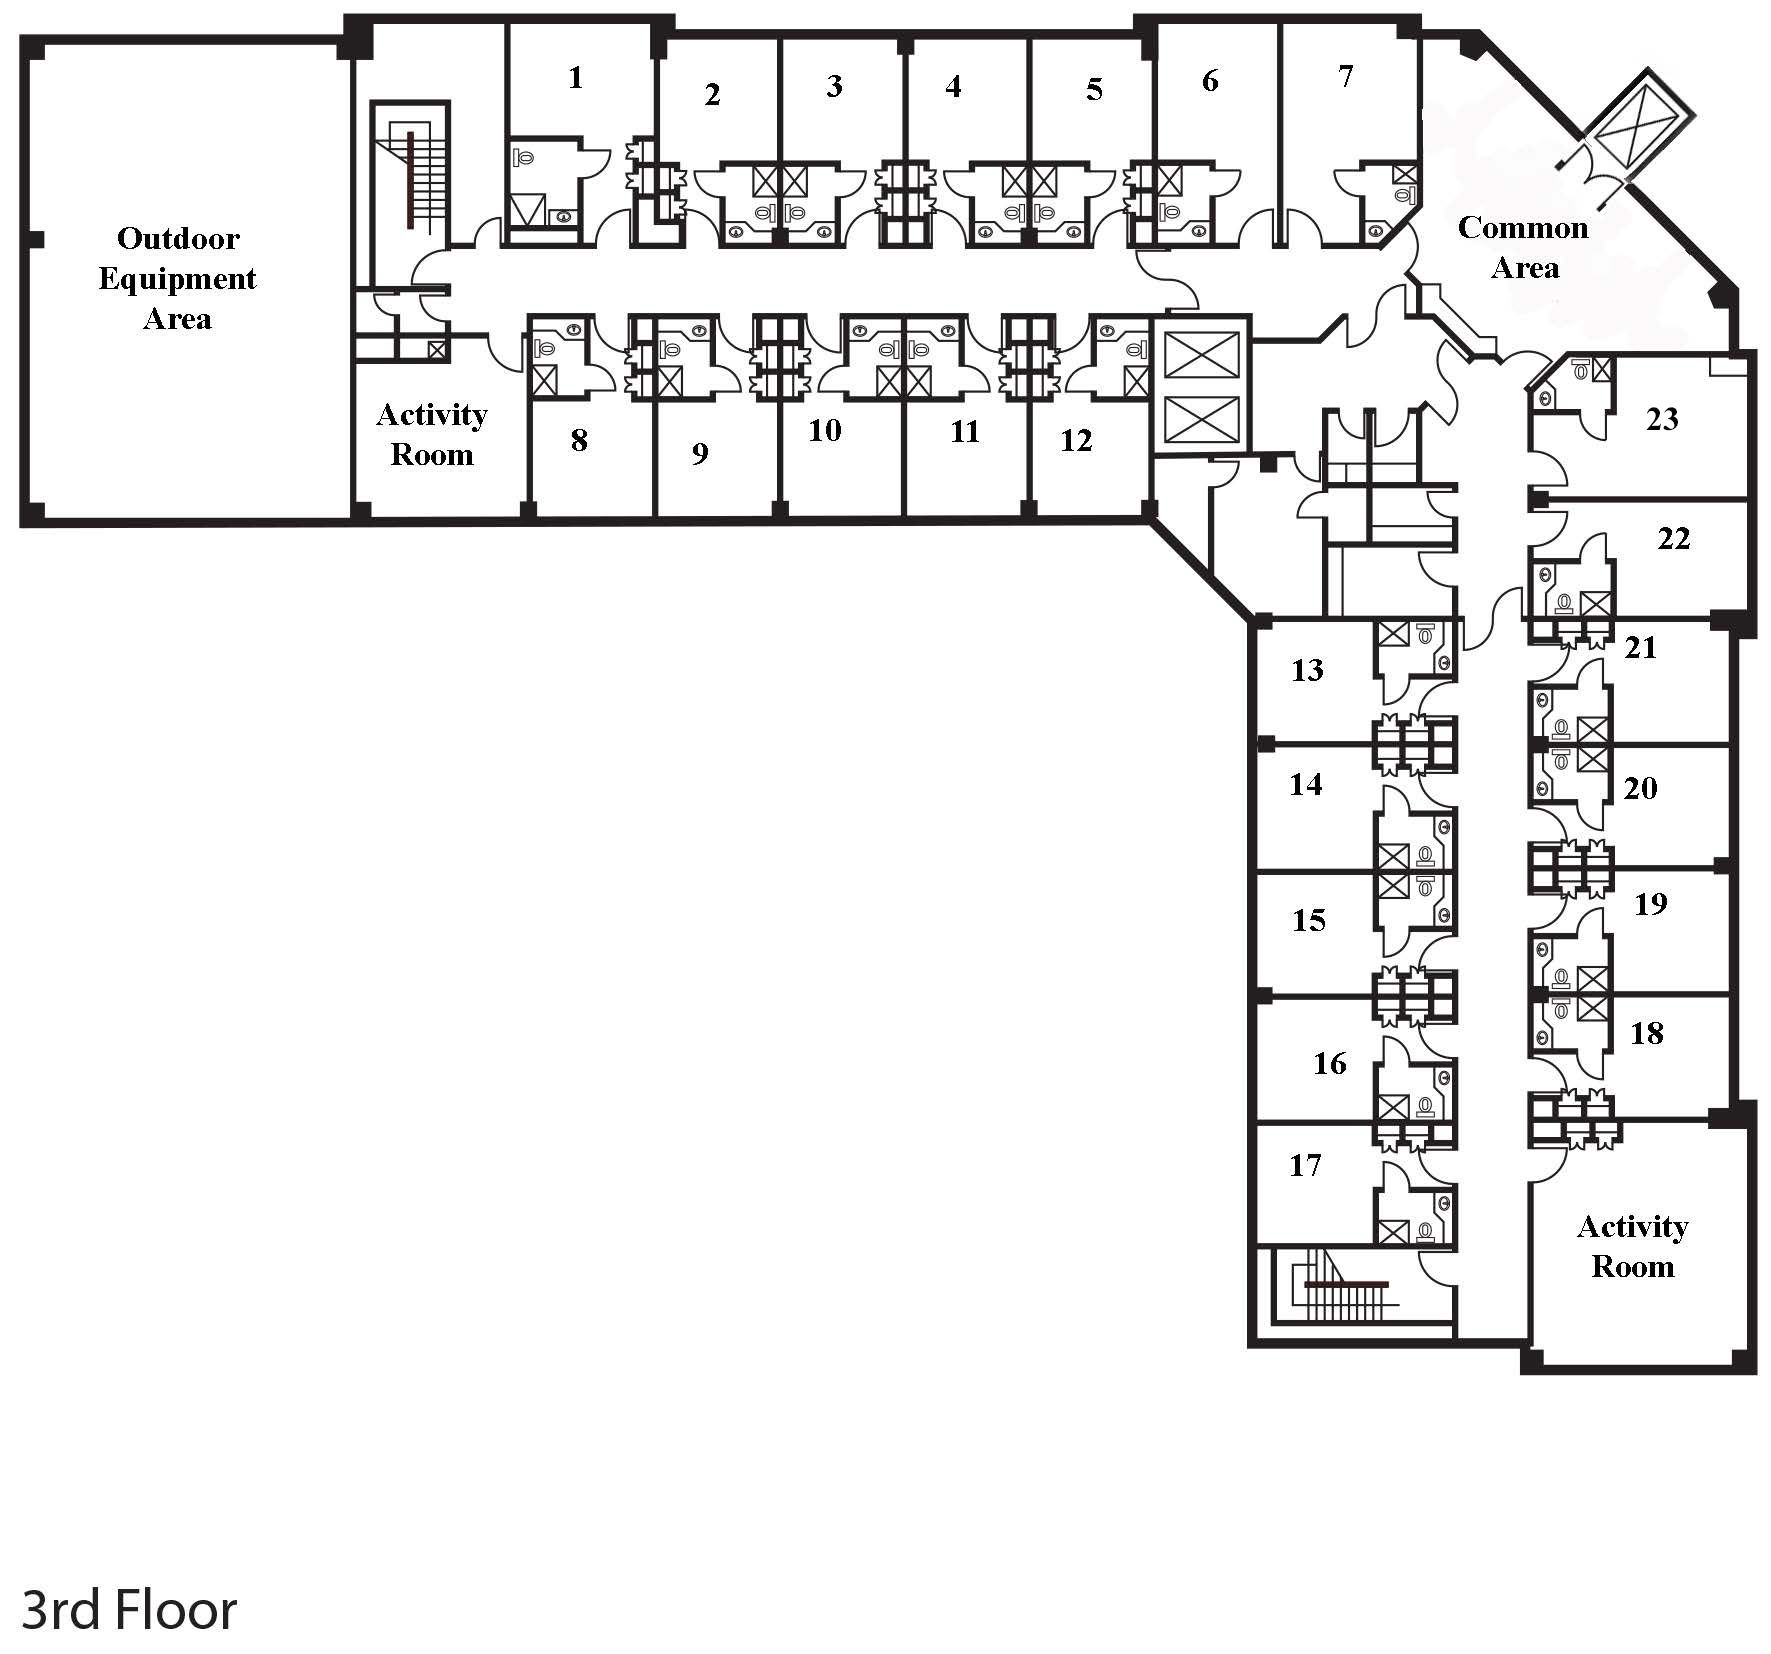 Assisted living floor plans google search floor plan for Floor plan search